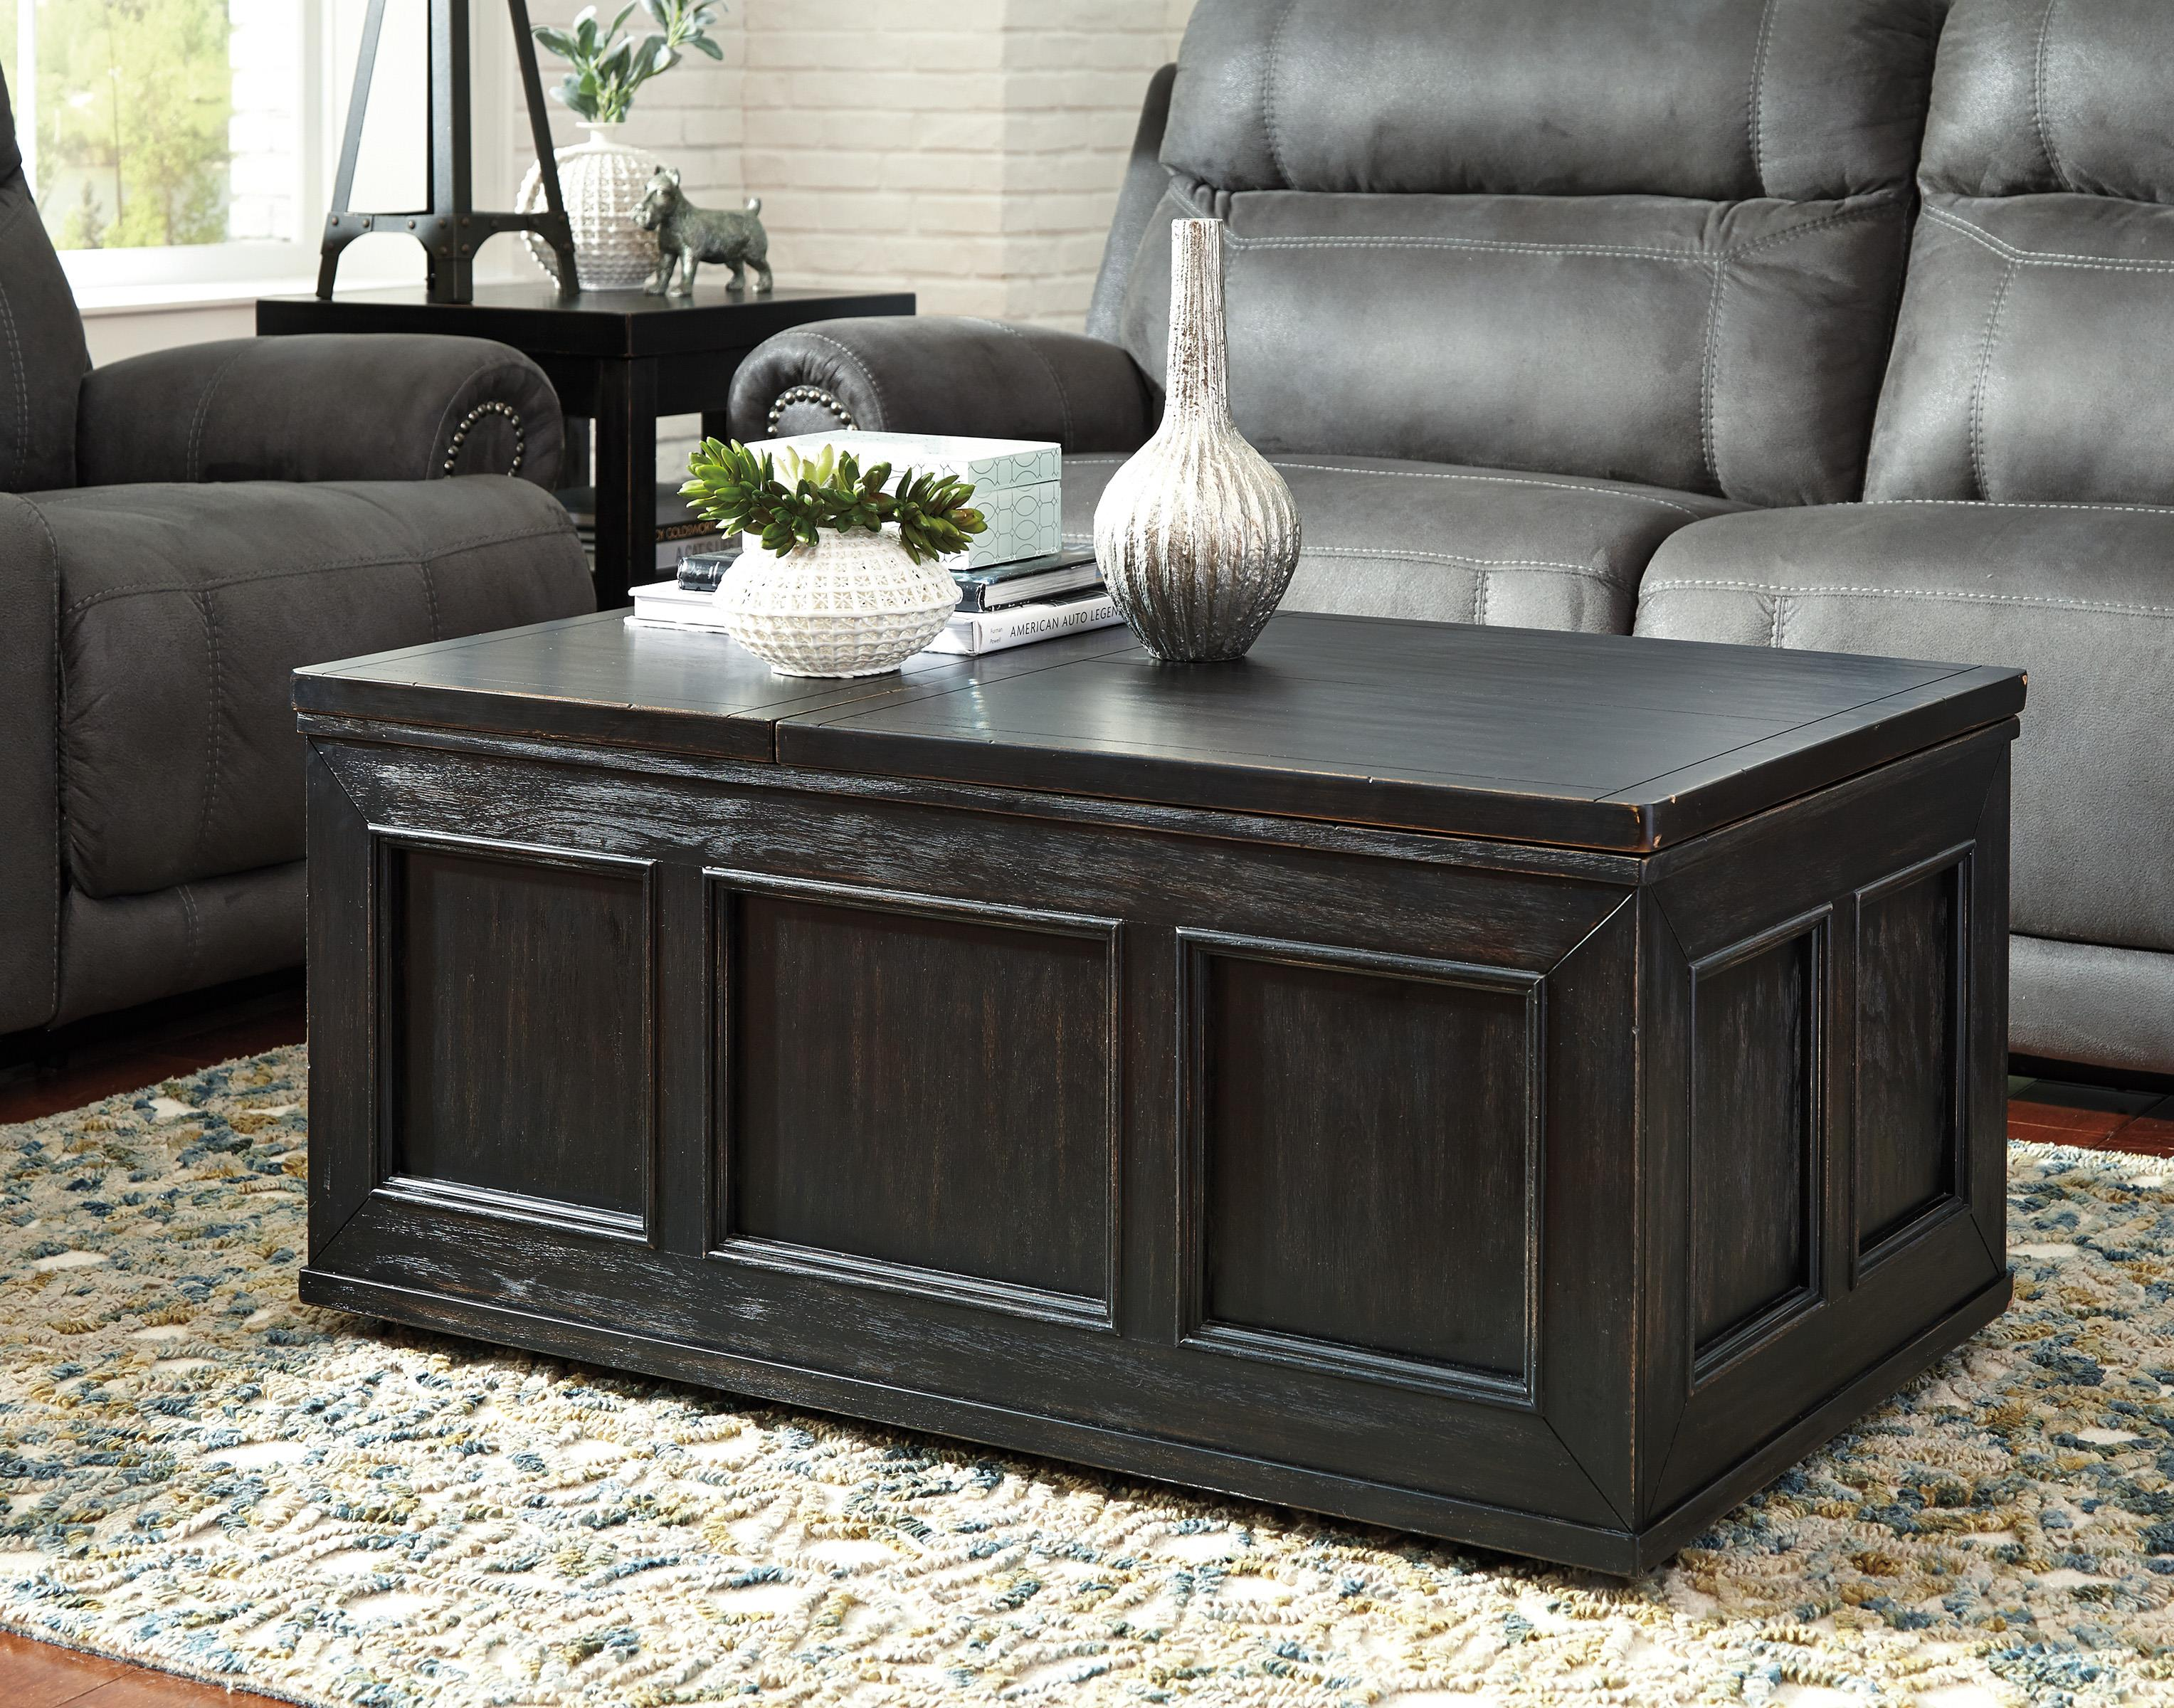 Rustic Distressed Black Trunk Style Lift Top Cocktail